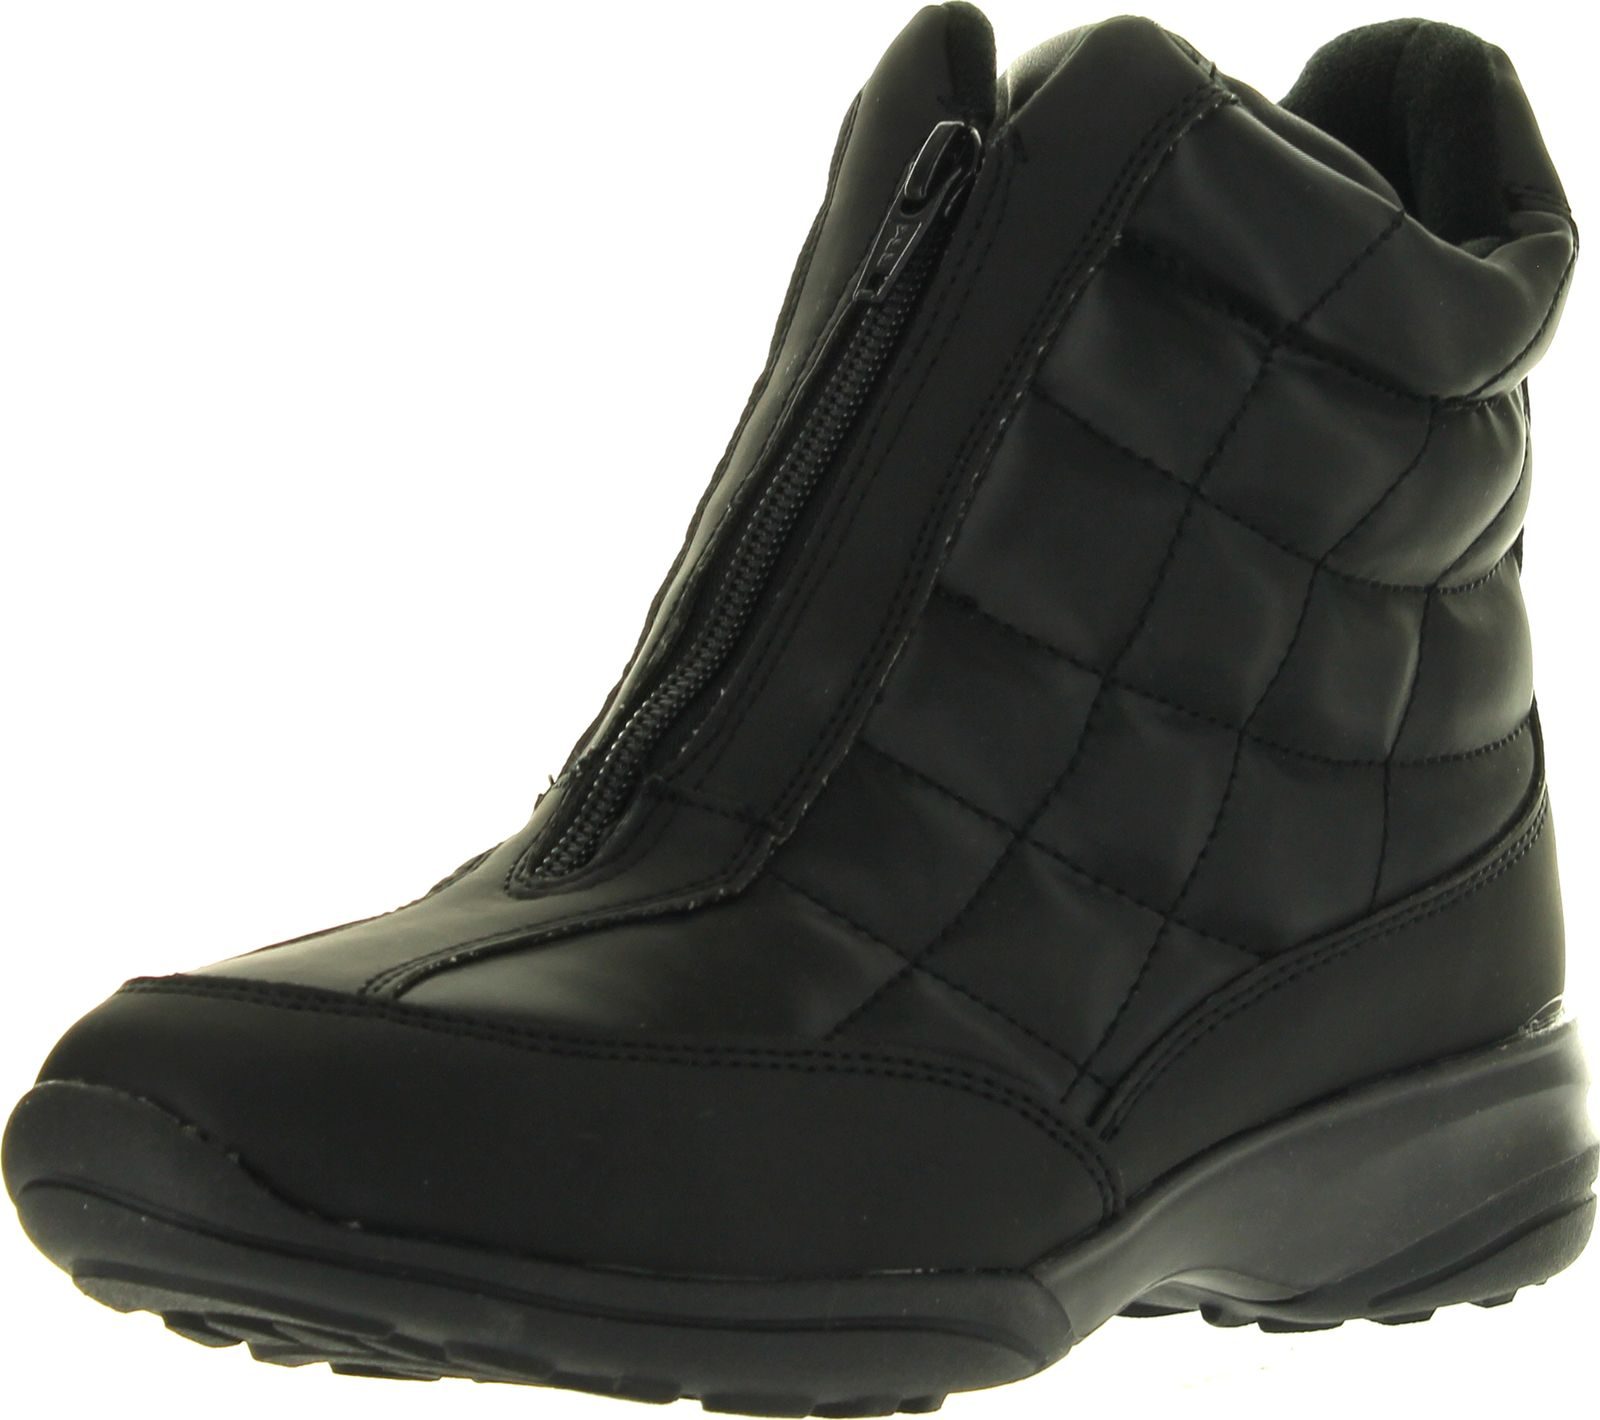 Cougar Cougar Womens Icon Winter Waterproof Snow Boots